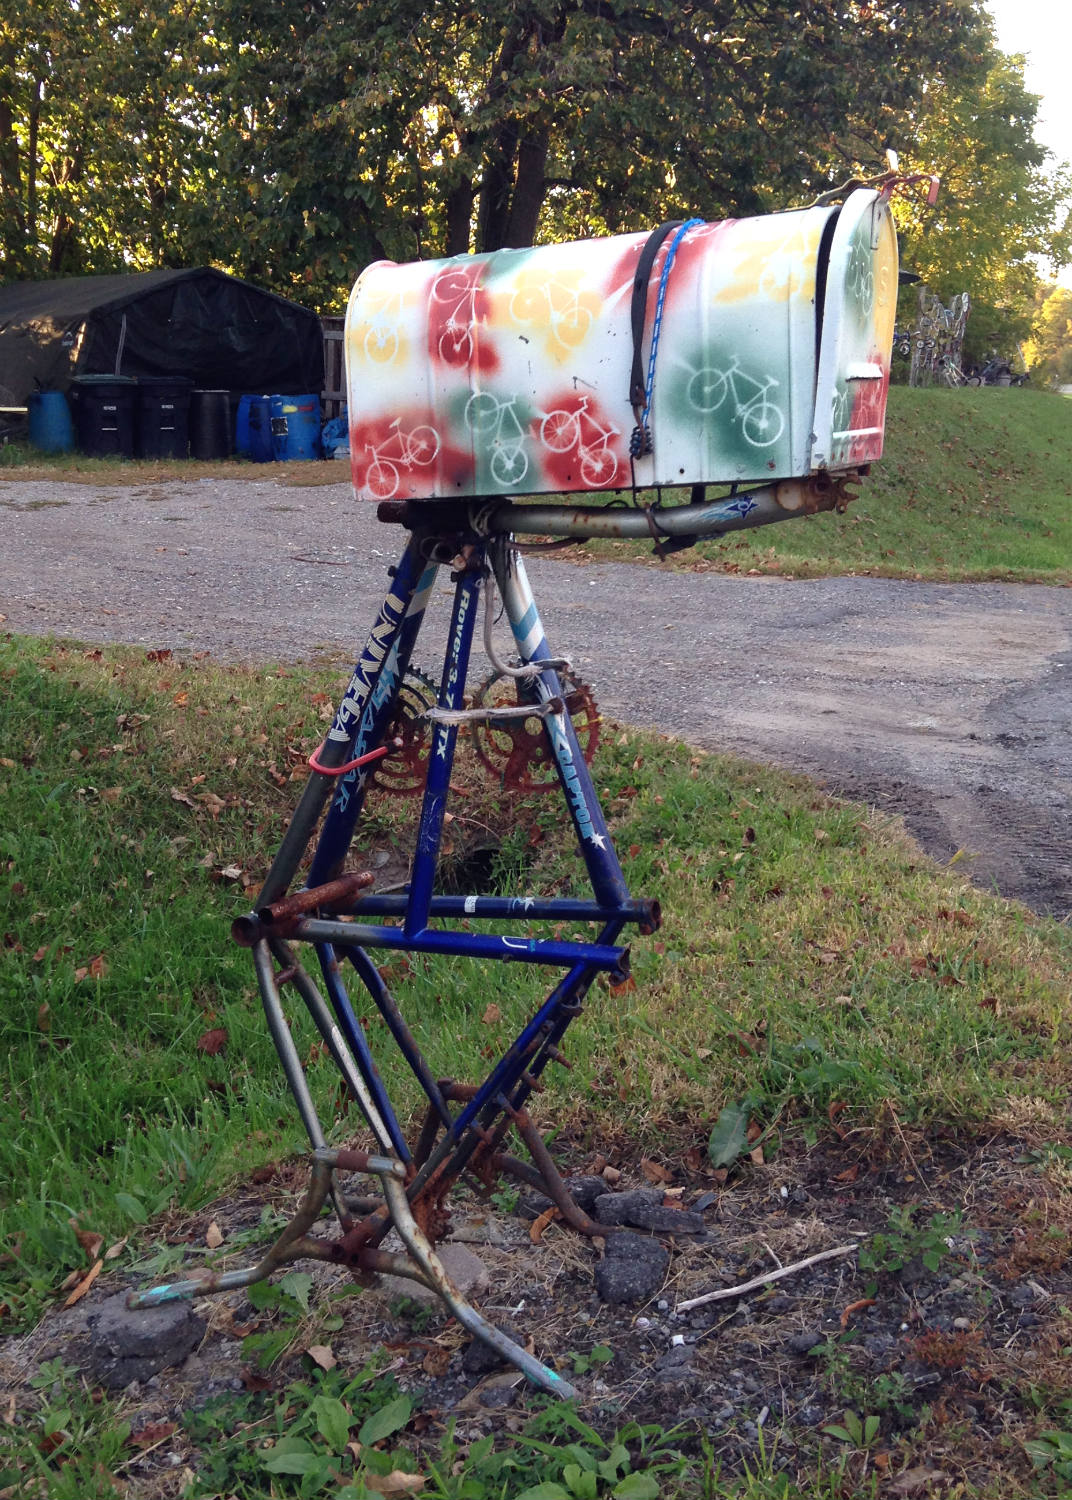 Bicycle Art and Yard Sculptures - Palmyra, NY Bike Frame Mailbox